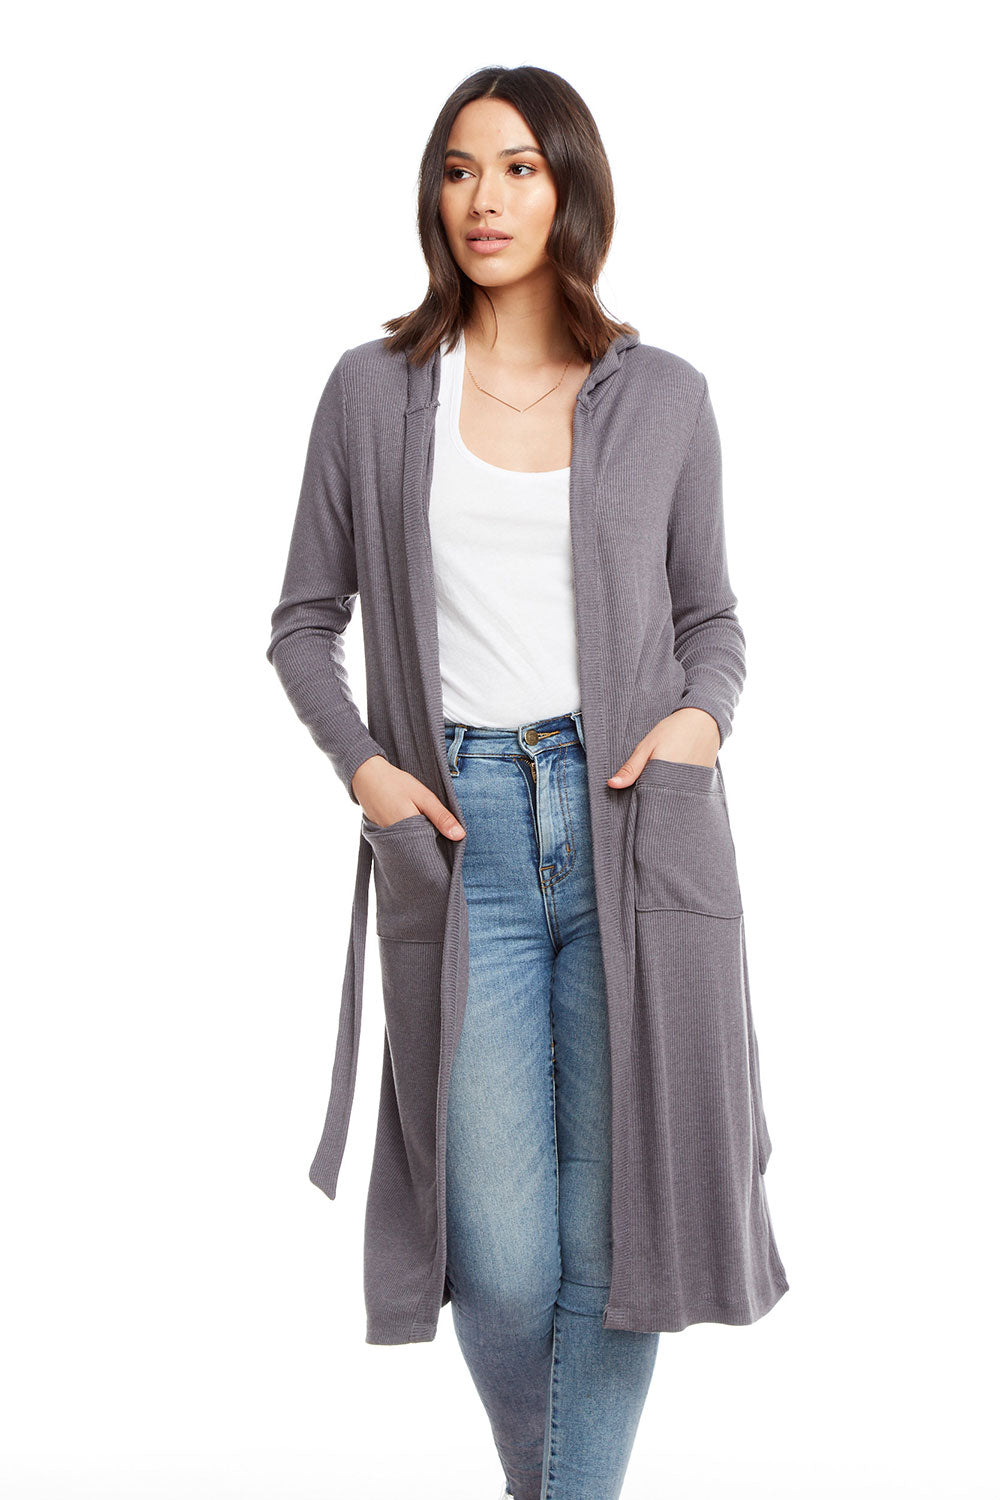 Cozy Rib Long Sleeve Open Hooded Duster with Belt, WOMENS, chaserbrand.com,chaser clothing,chaser apparel,chaser los angeles